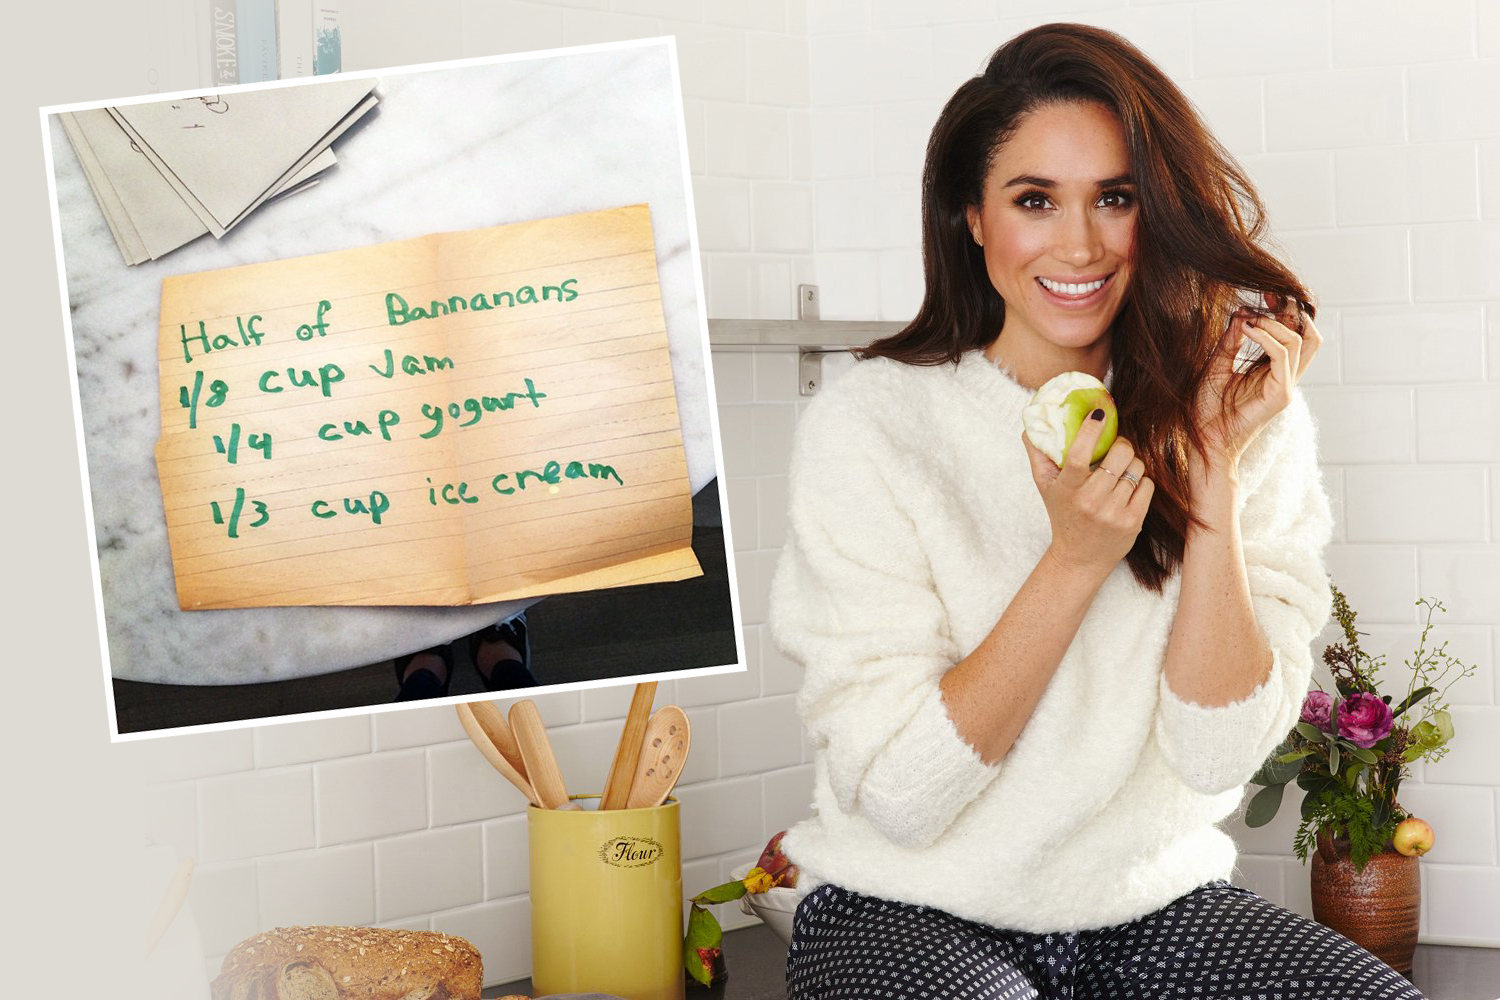 Meghan Markle's Childhood Banana Milkshake Recipe